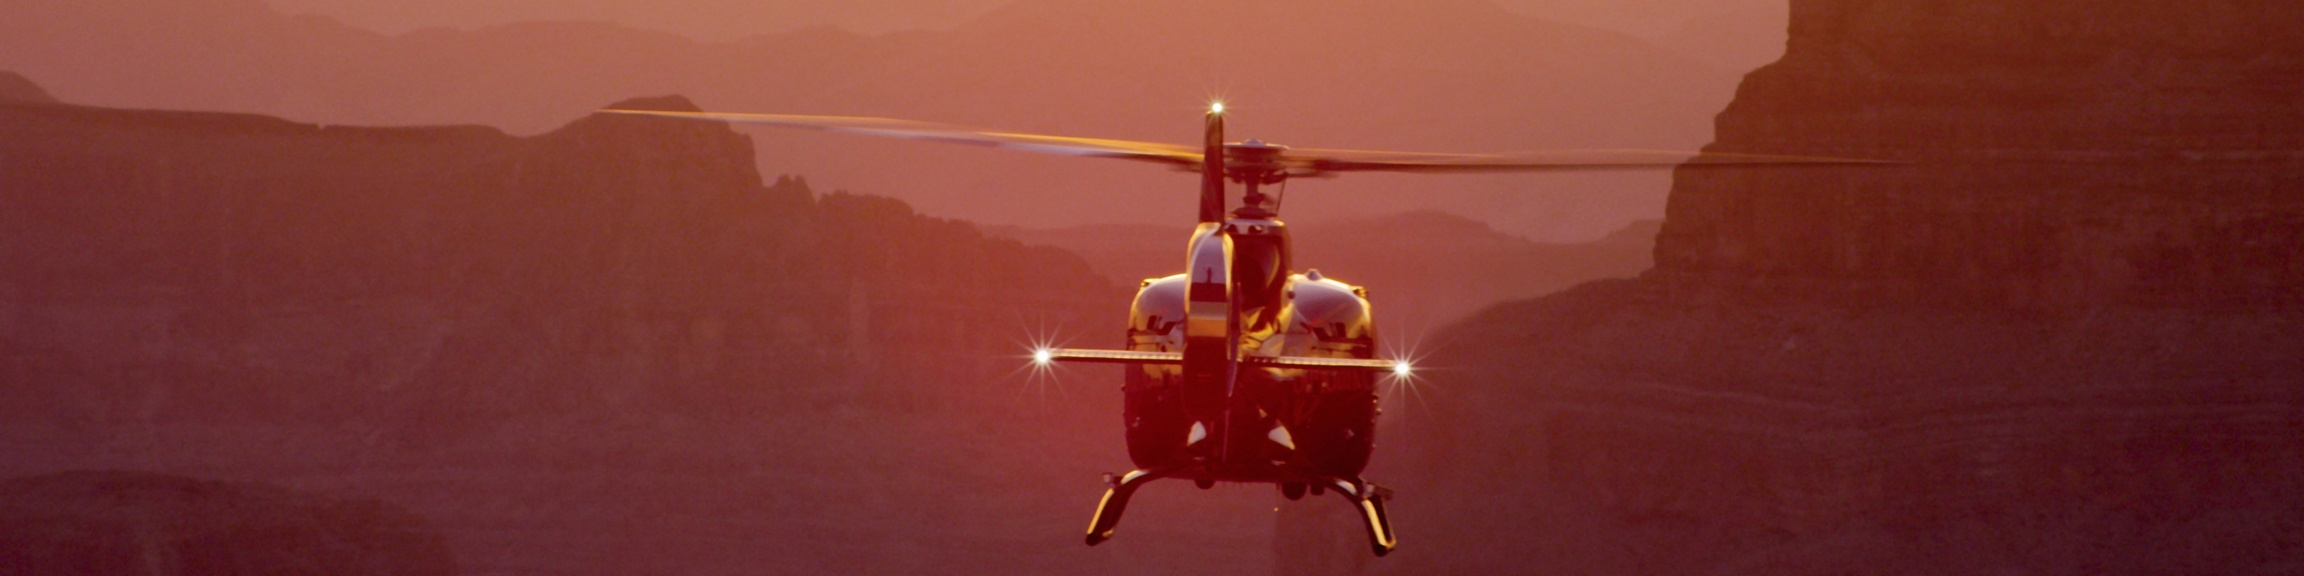 Sundance Helicopters - Brand Assets